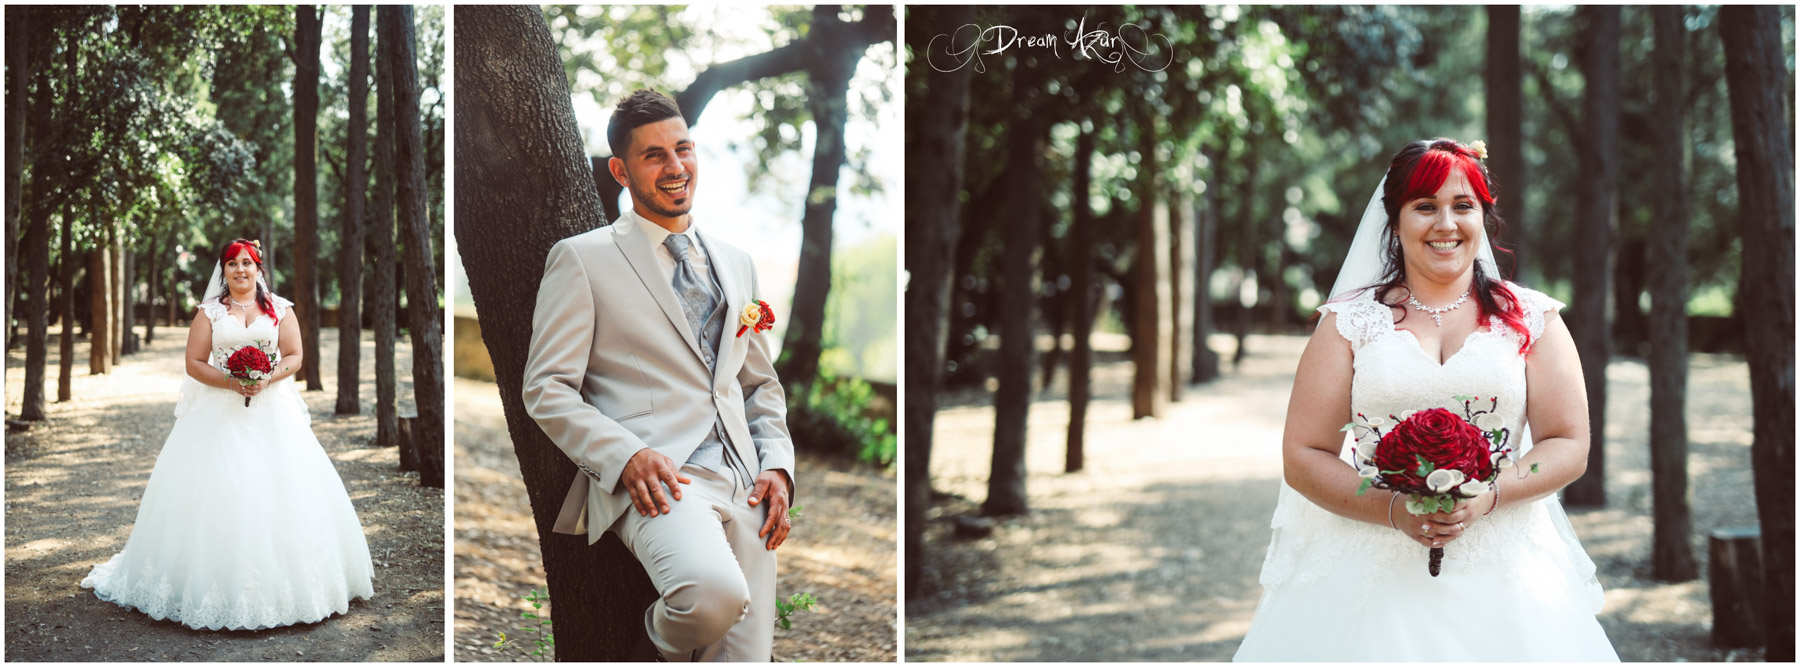 190824COMPO-Mariage-Cindy-et-Anthony-54